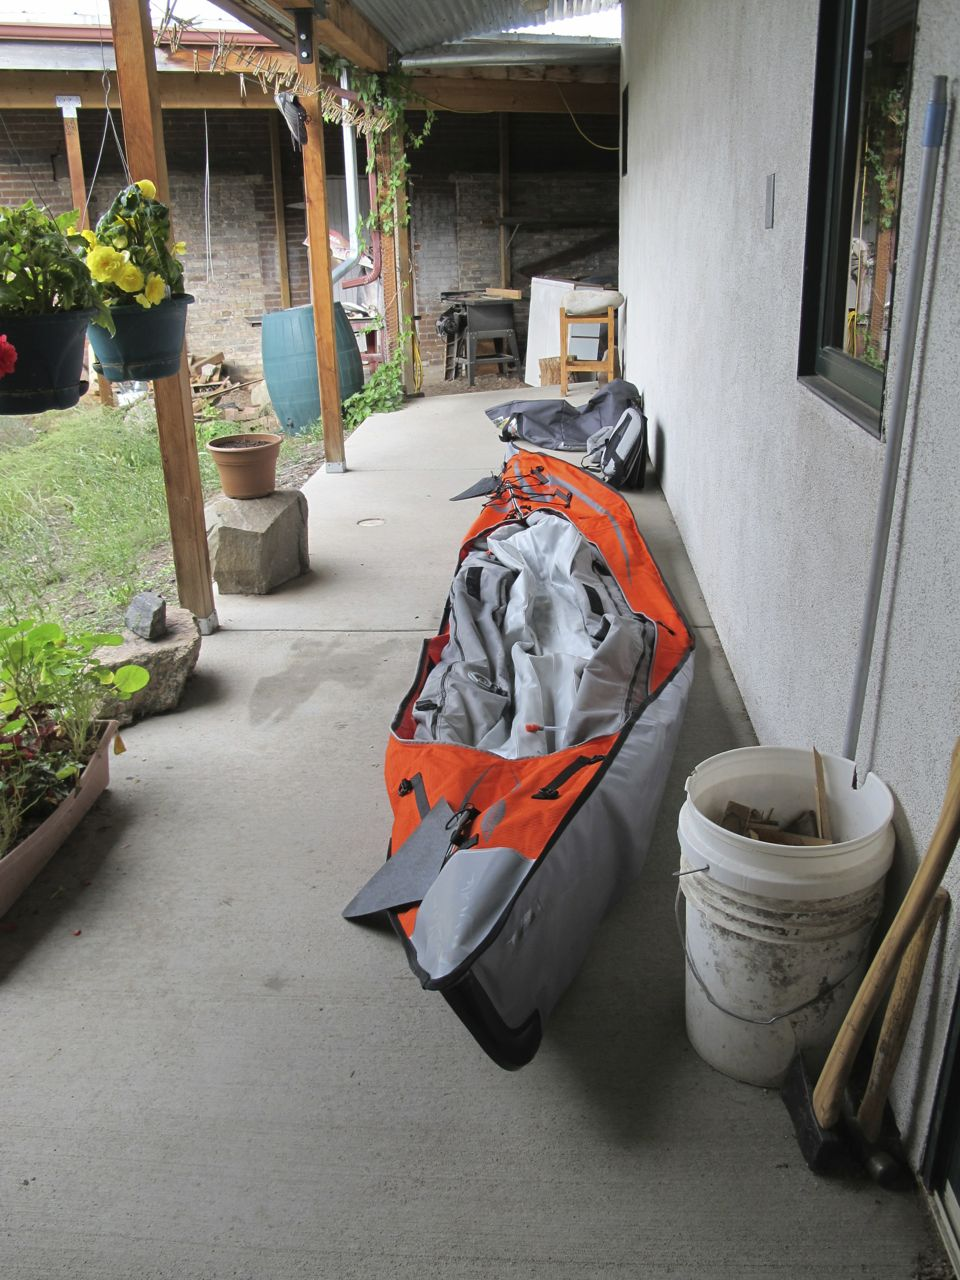 The deflated kayak, drying on the back porch.